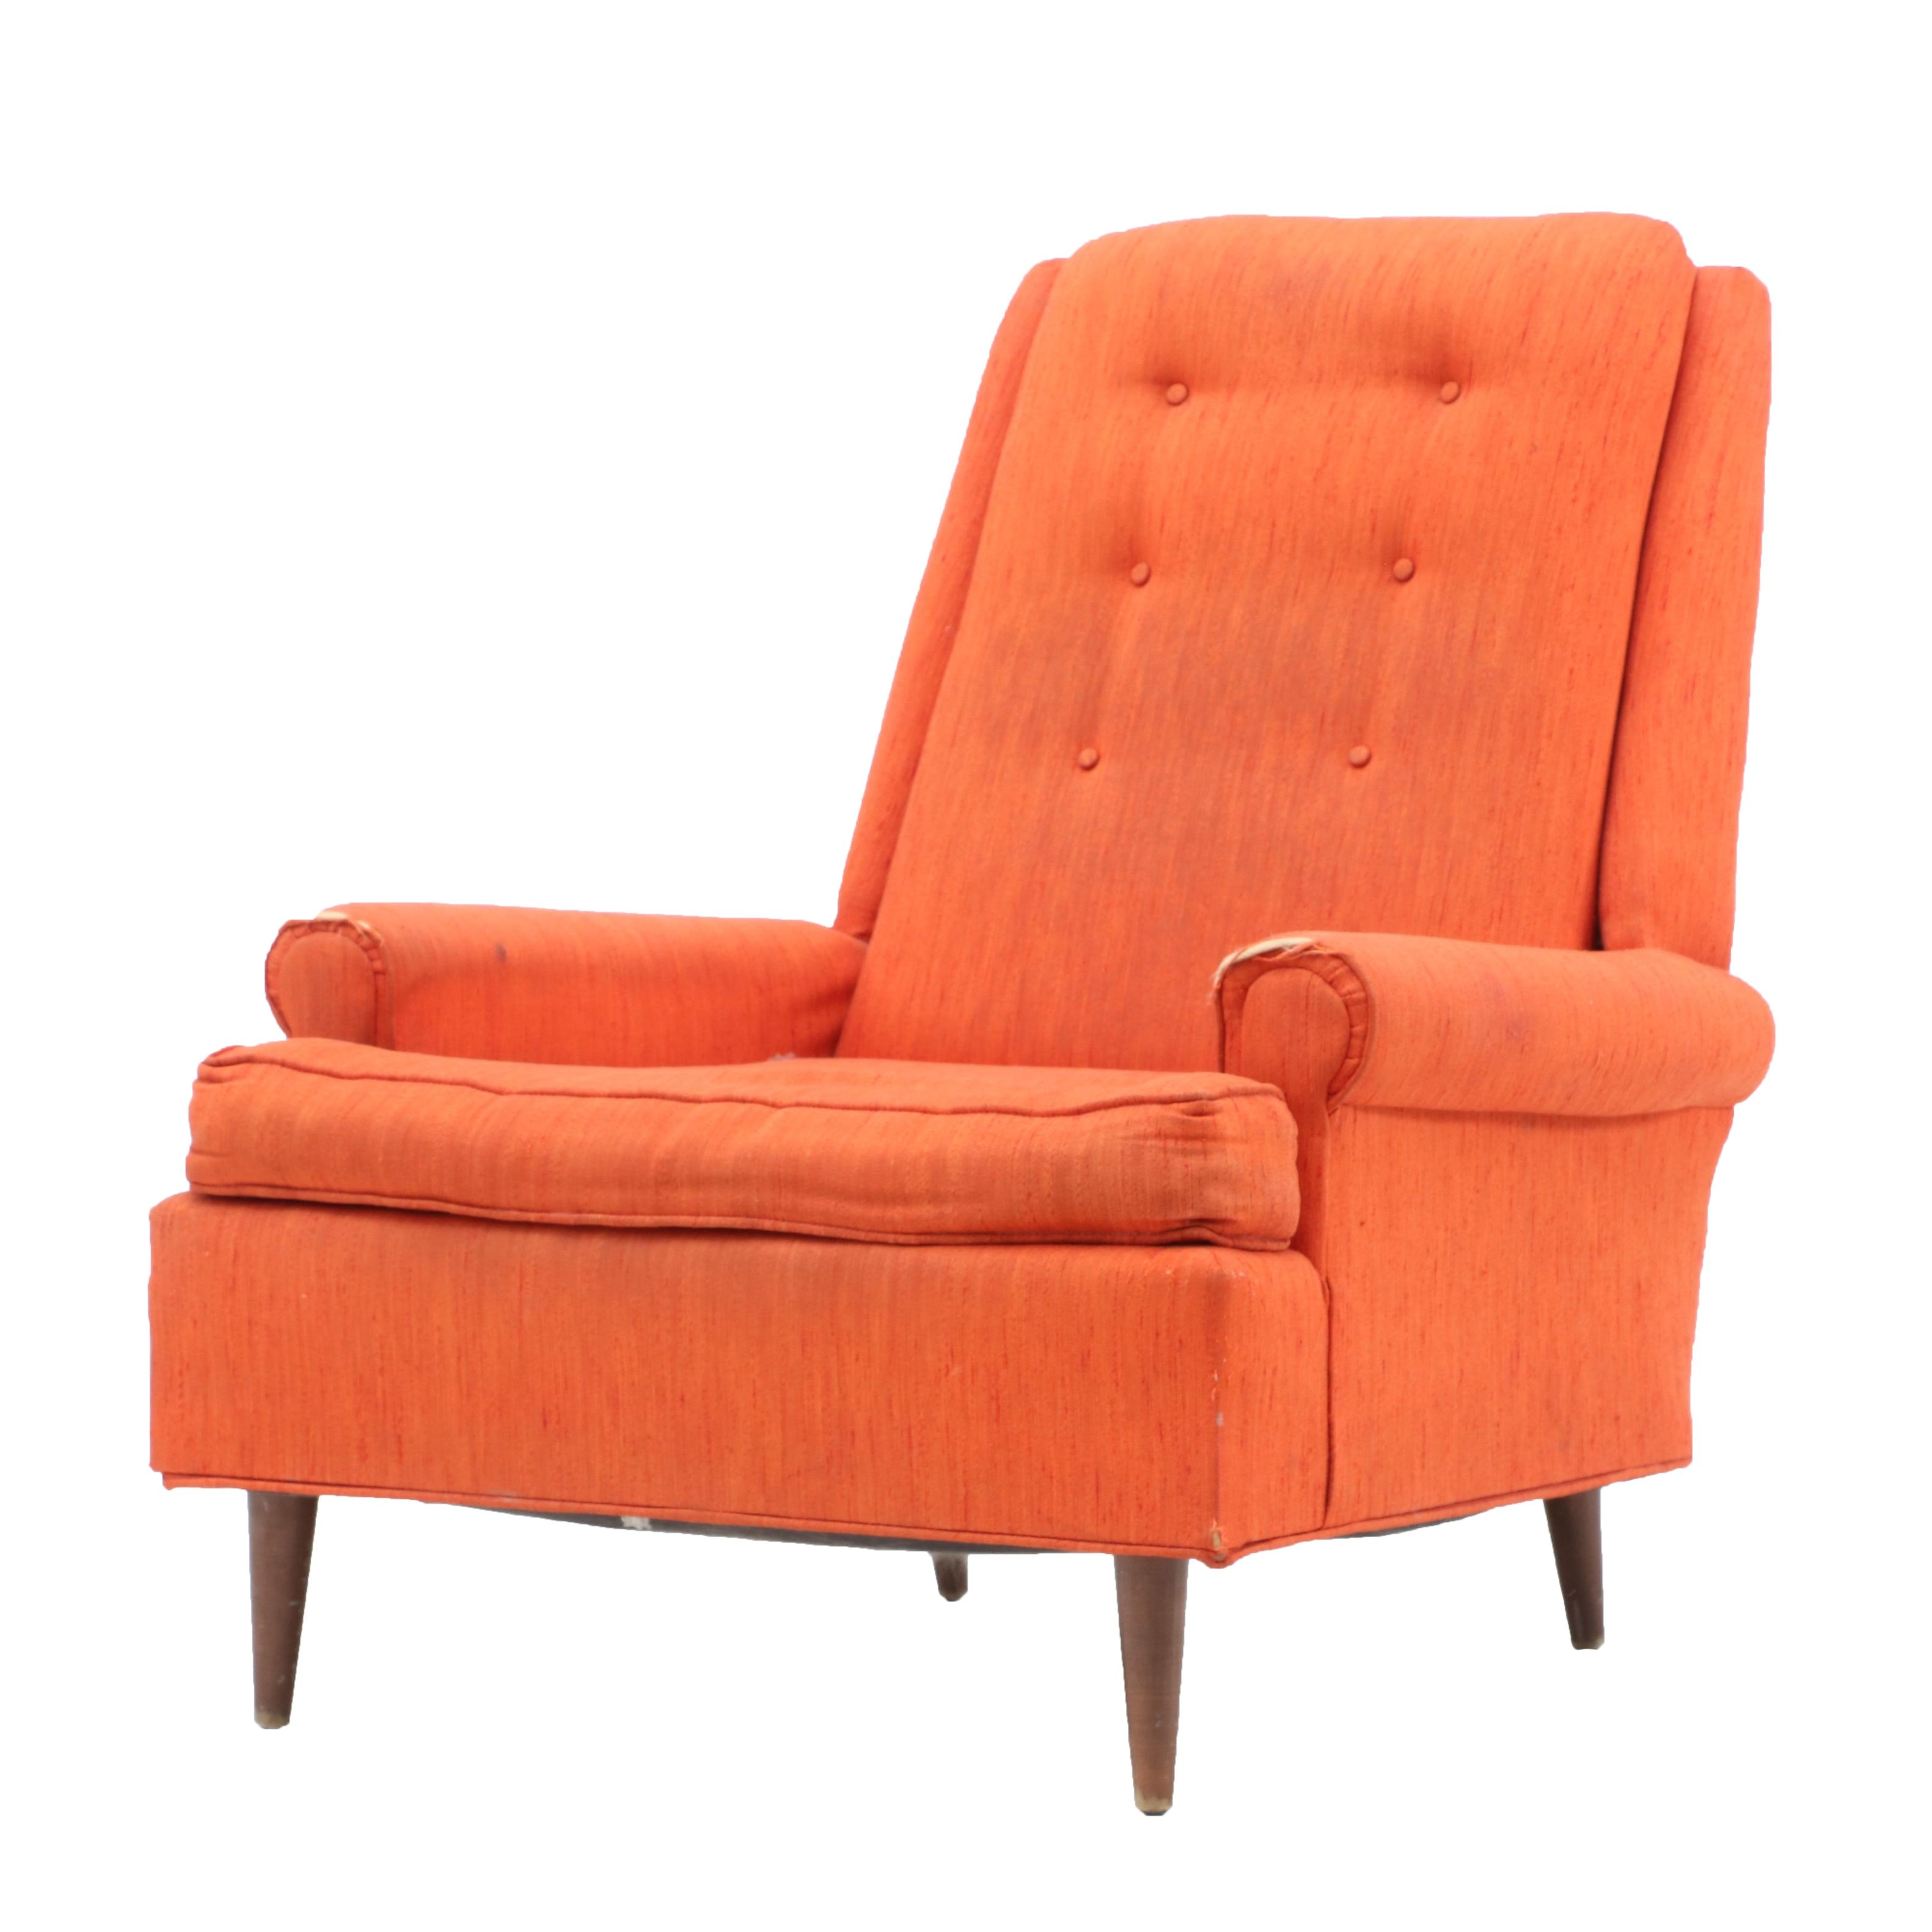 Mid Century Modern Orange Upholstered Chair